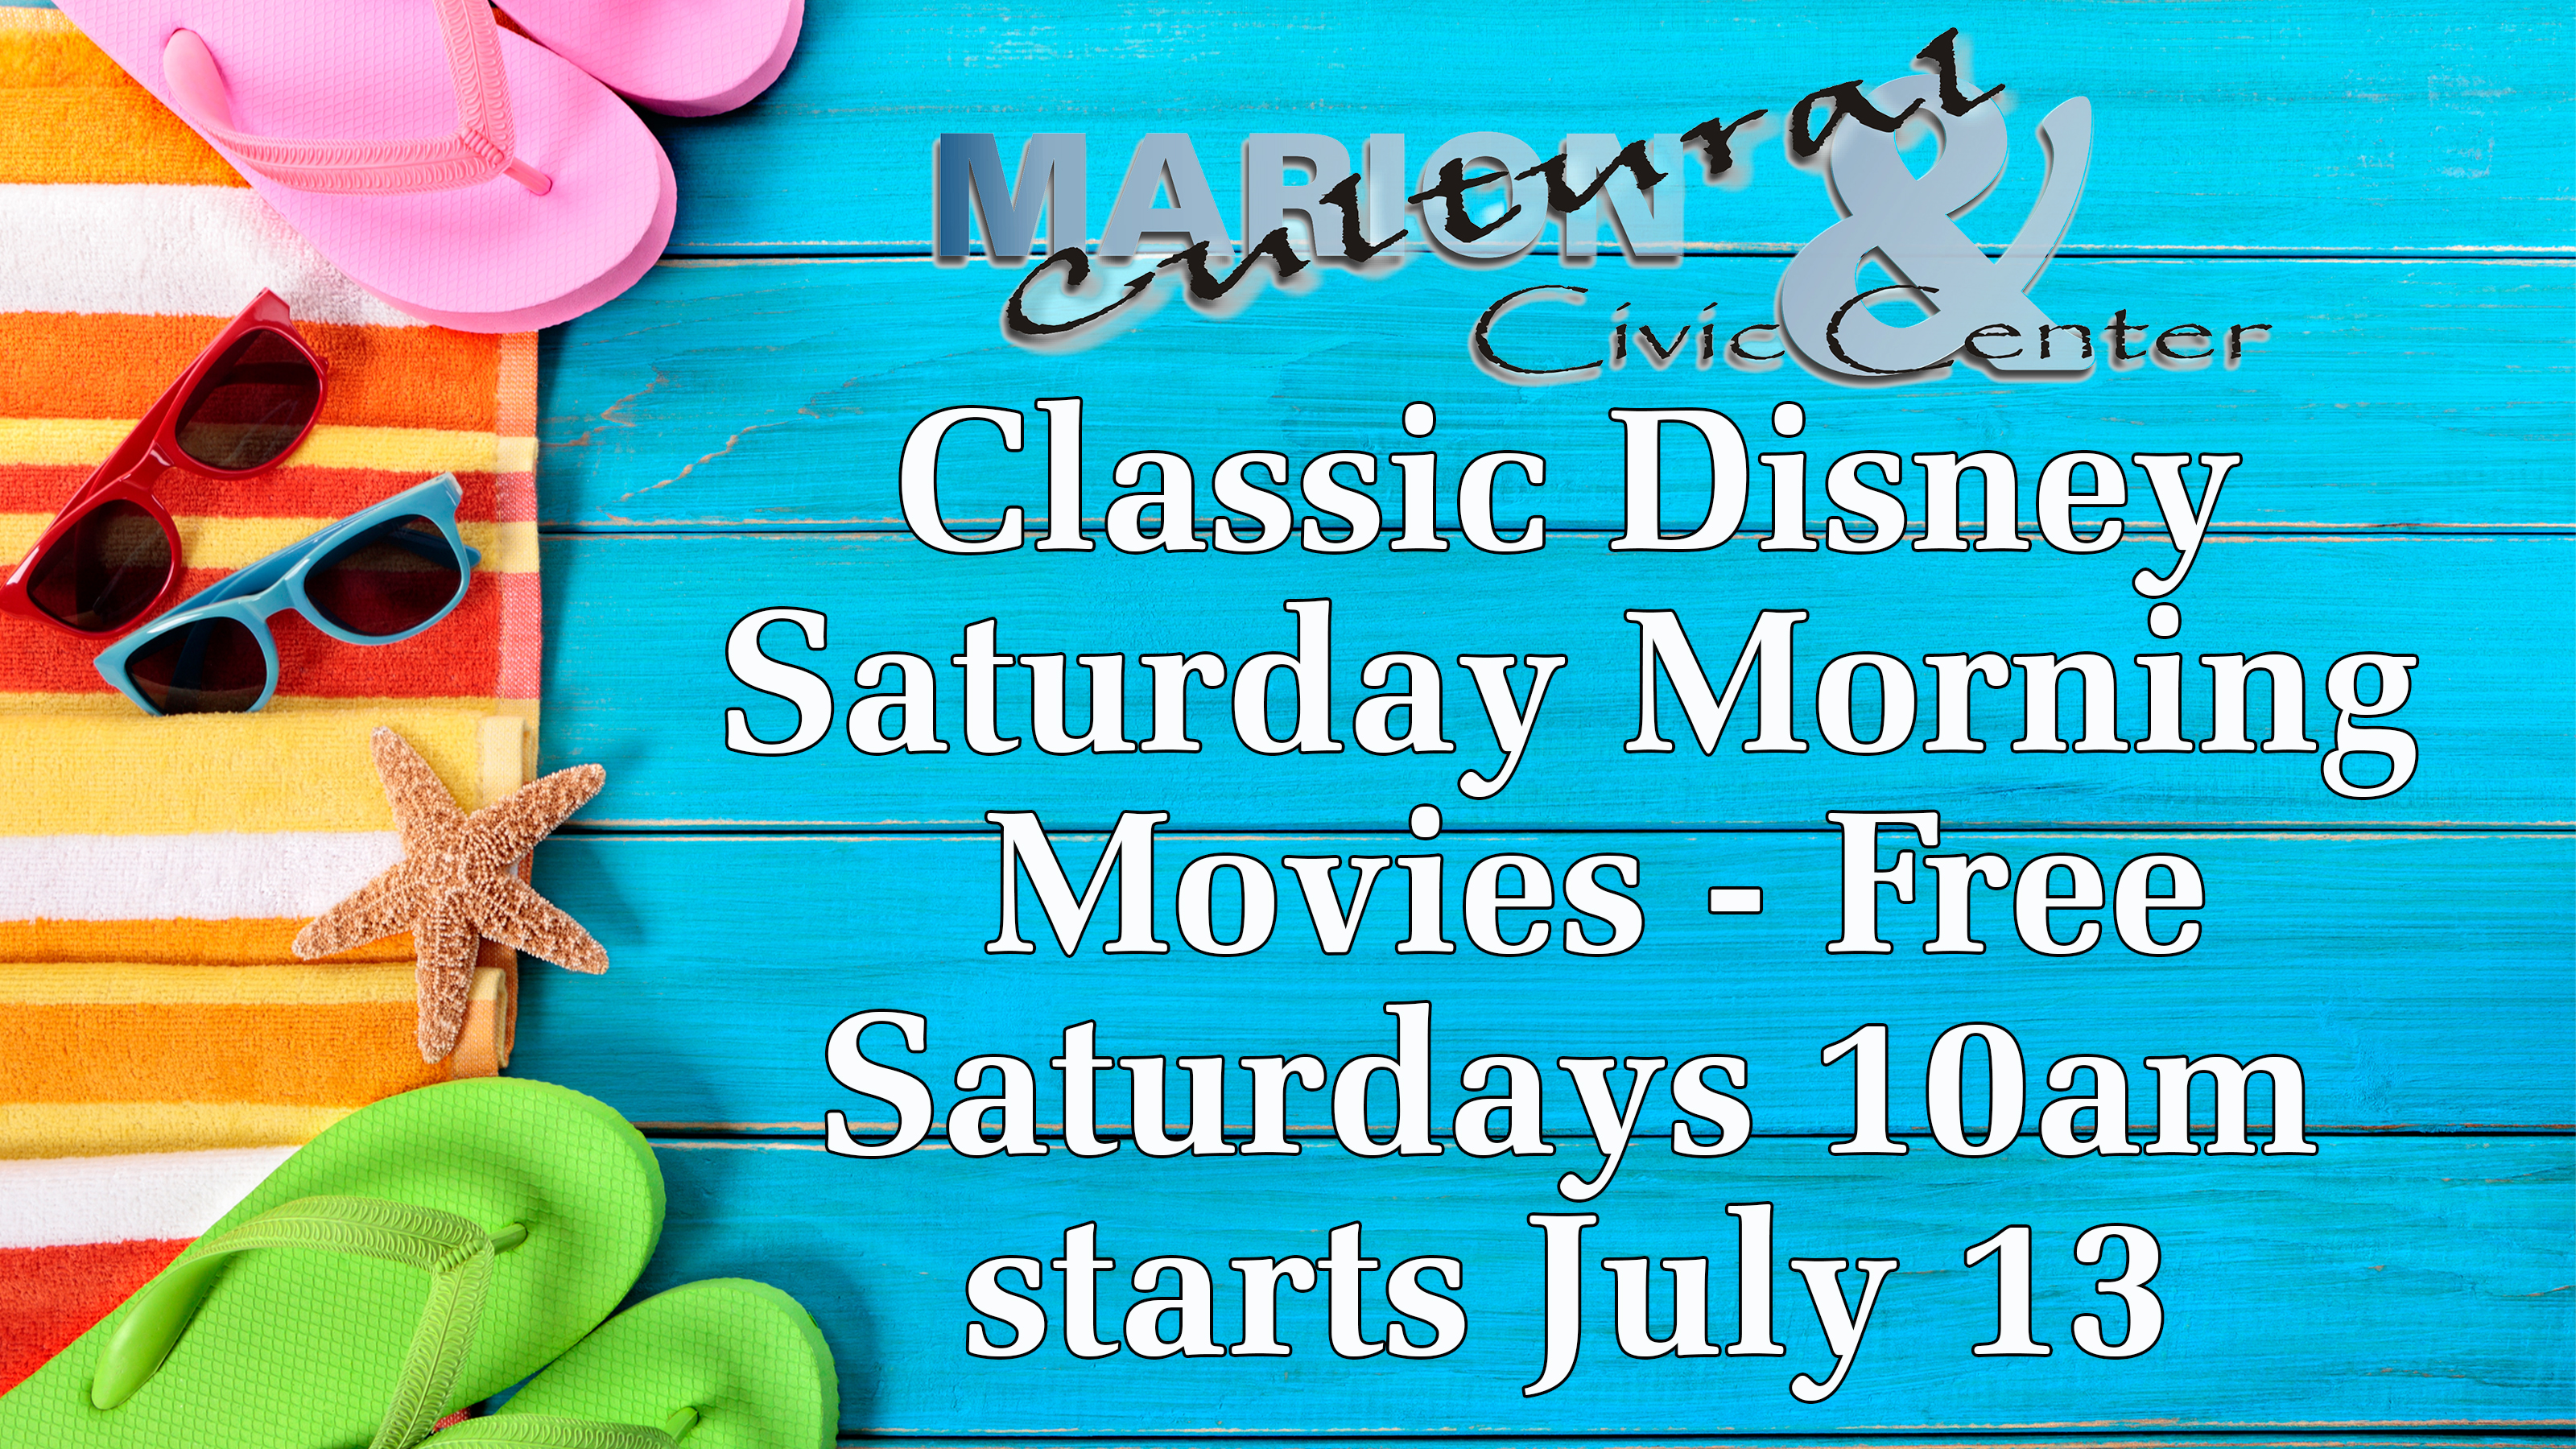 Free Classic Disney Saturday Morning Movies